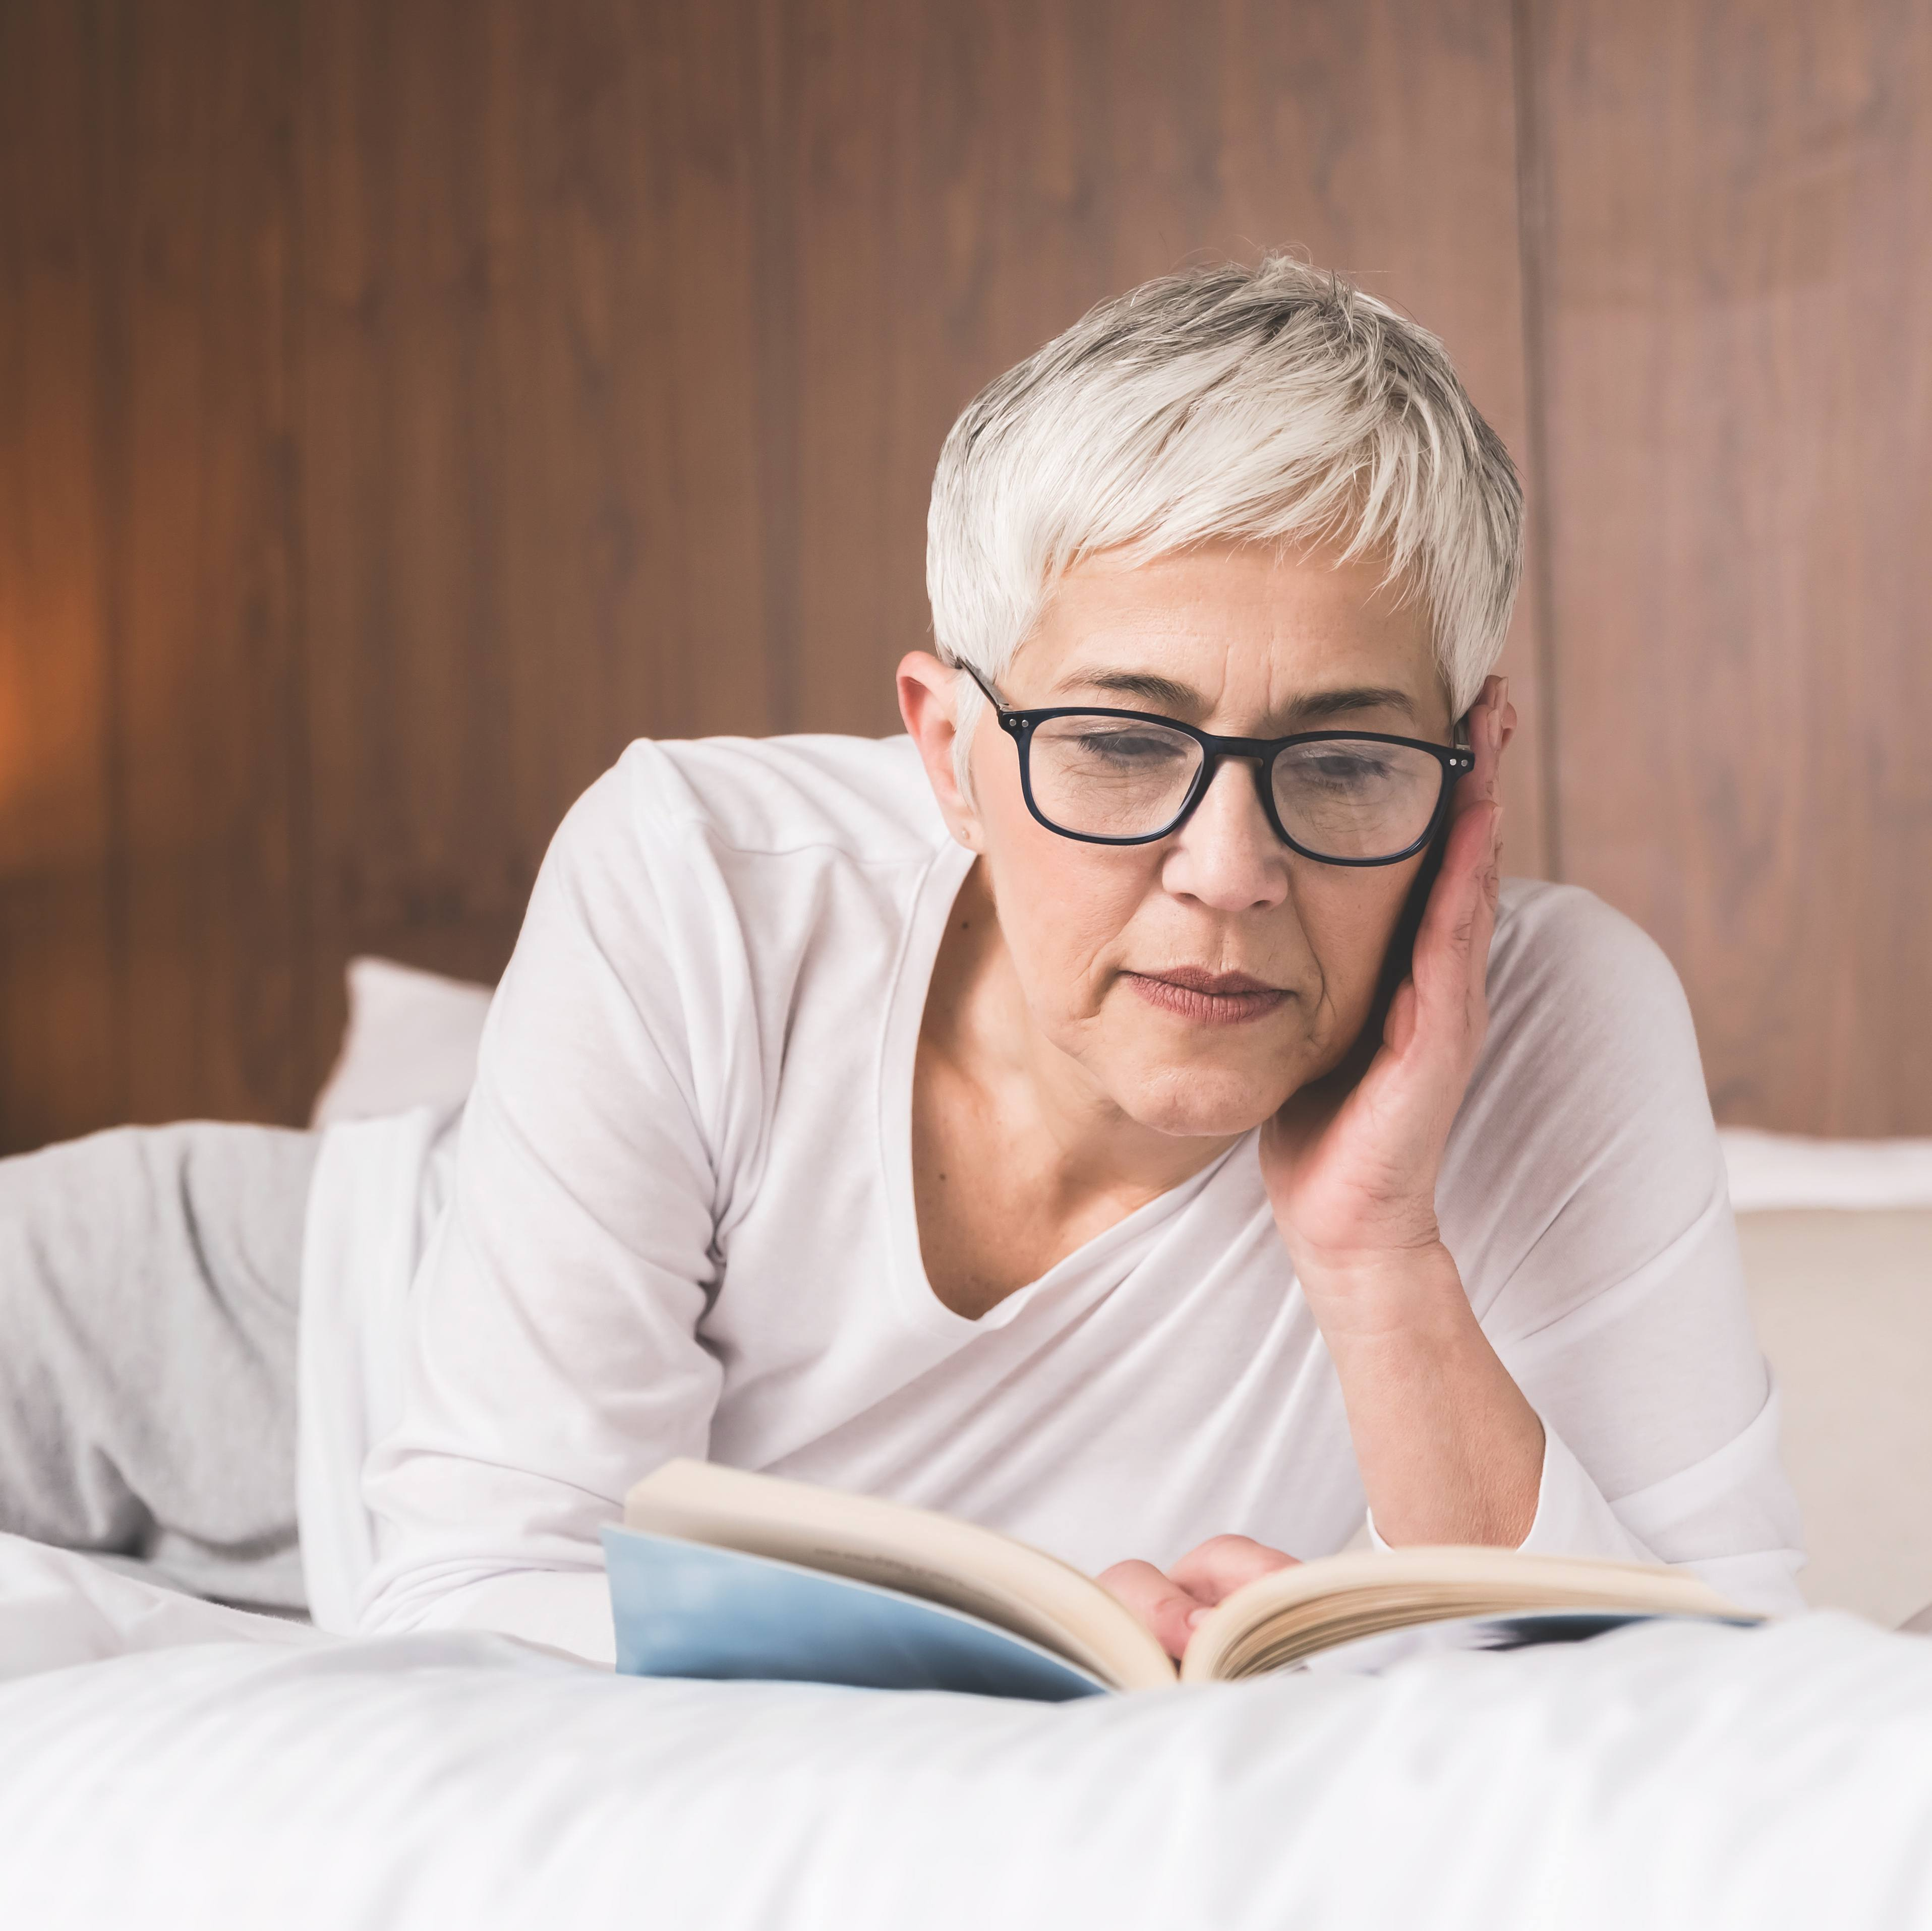 a white middle aged woman with light gray hair, wearing glasses and resting, relaxing a bed reading a book